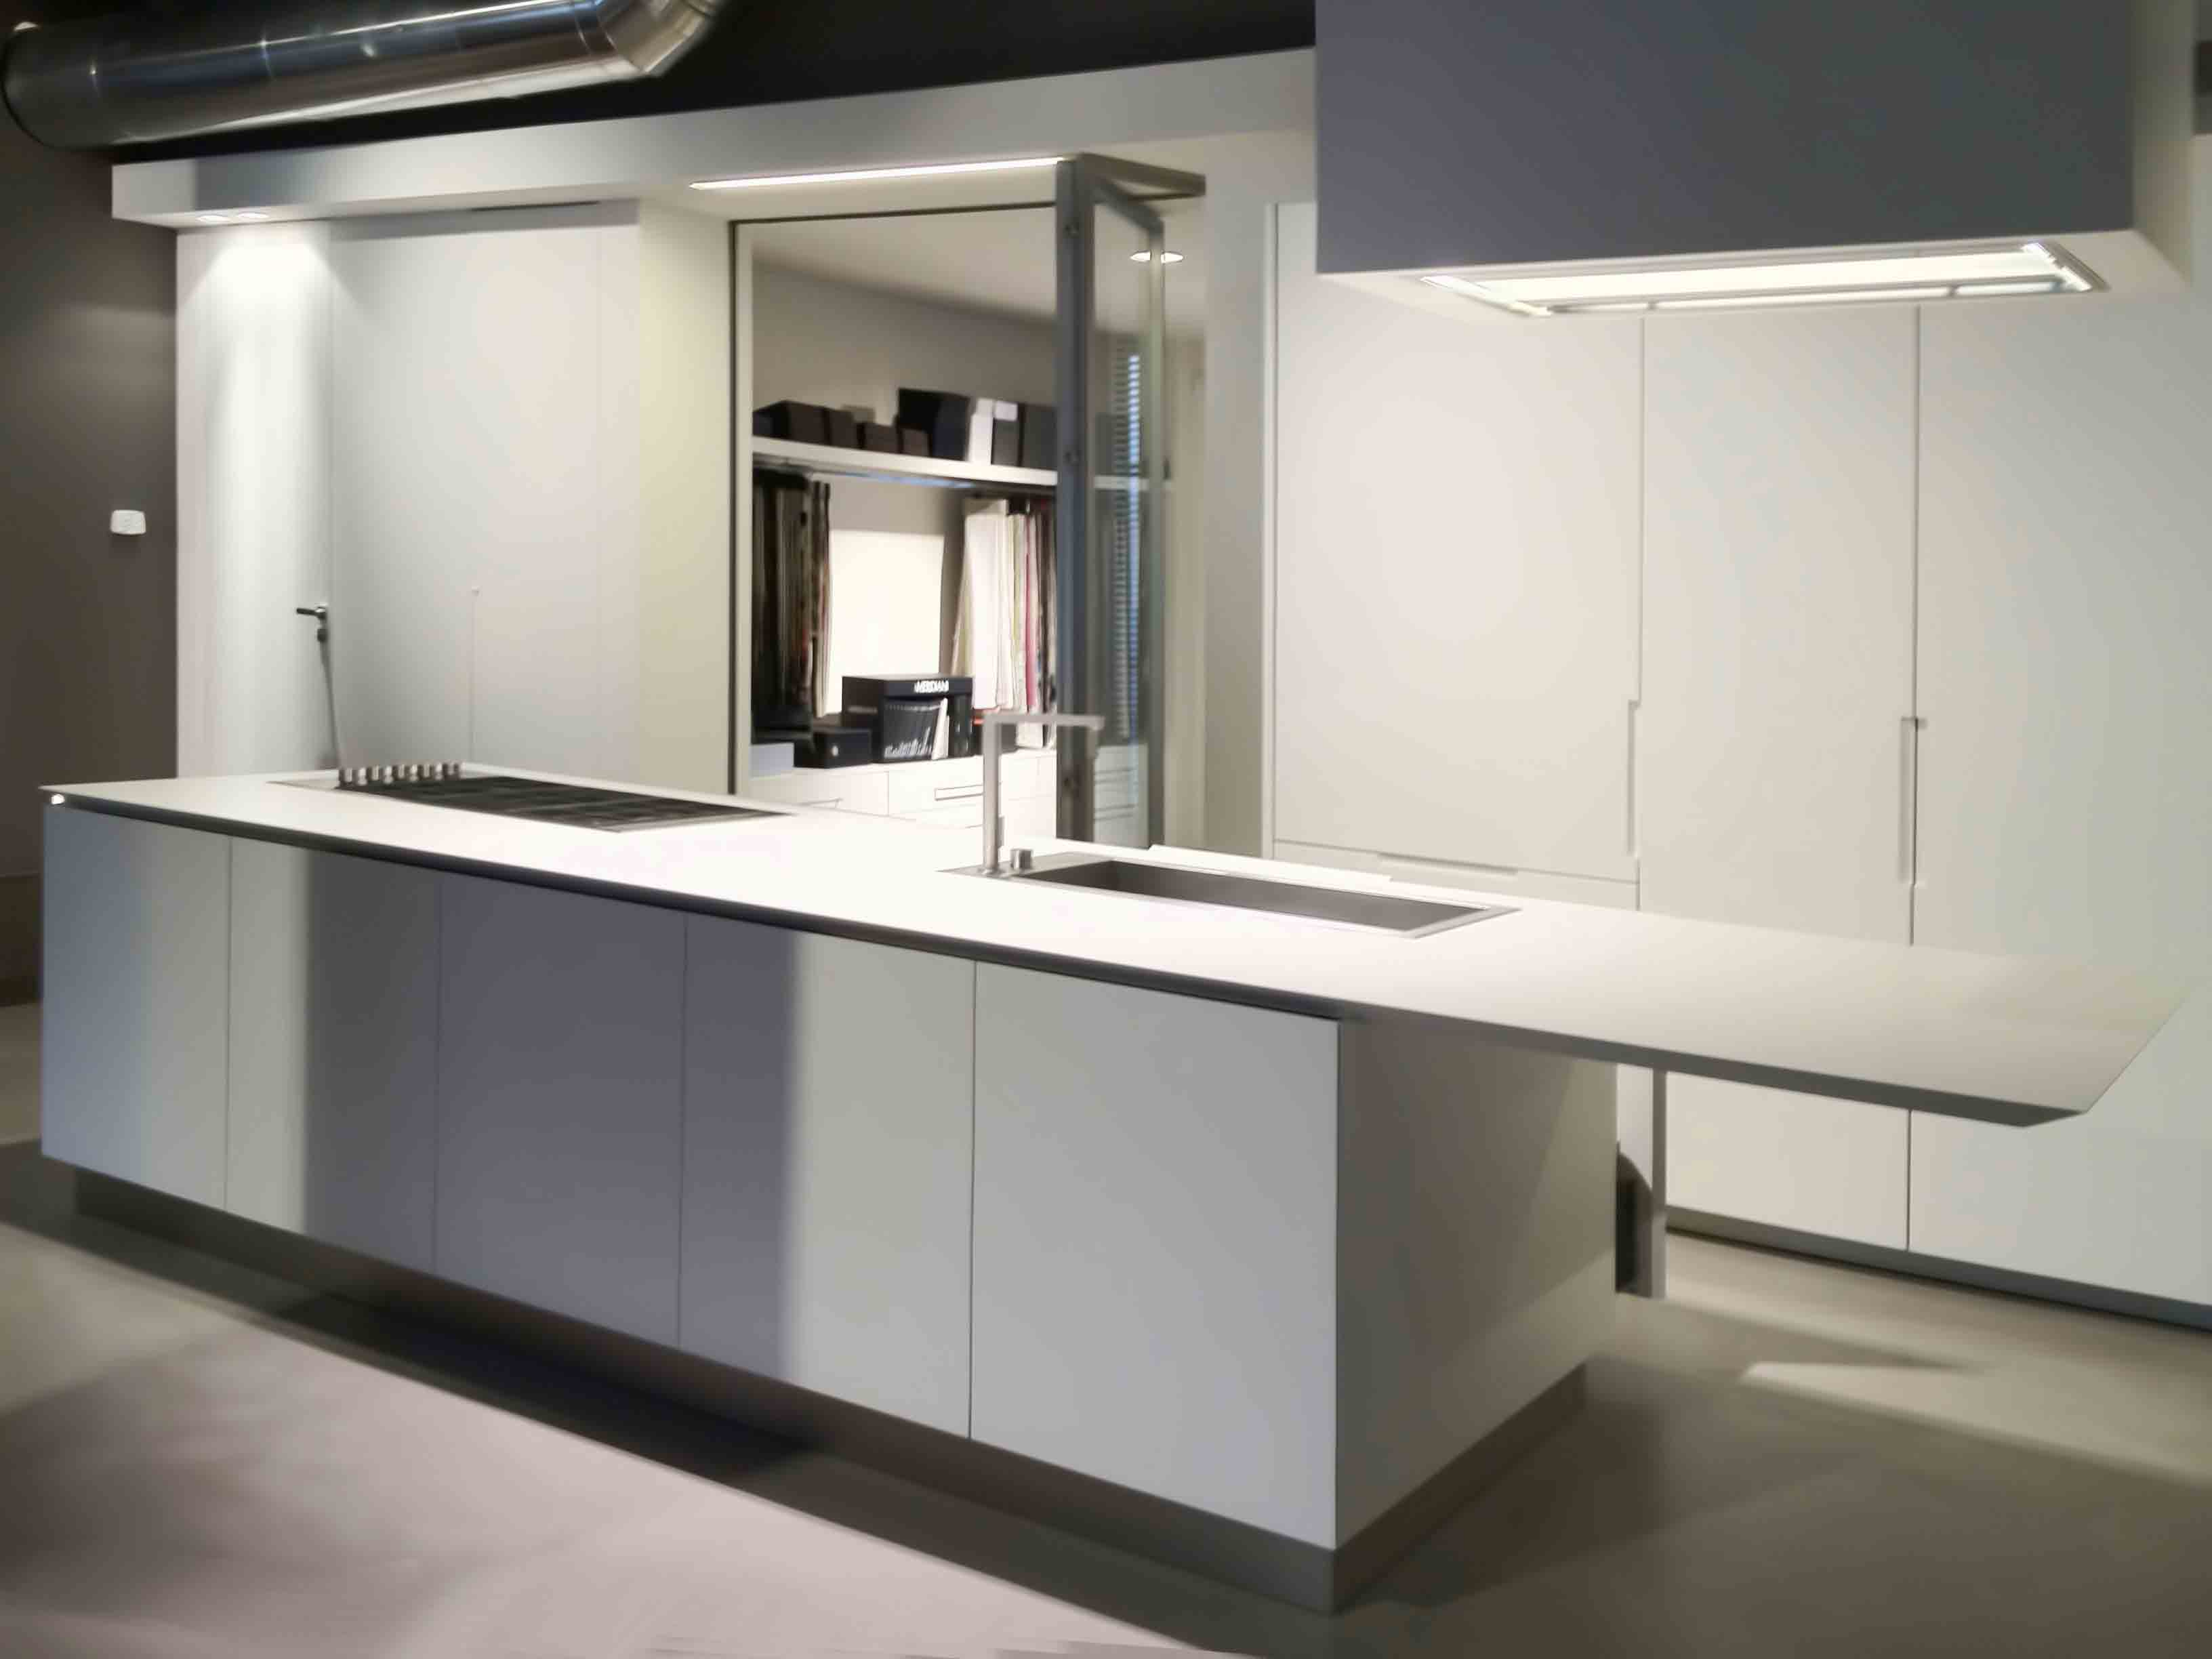 pin cucine boffi on pinterest. Black Bedroom Furniture Sets. Home Design Ideas